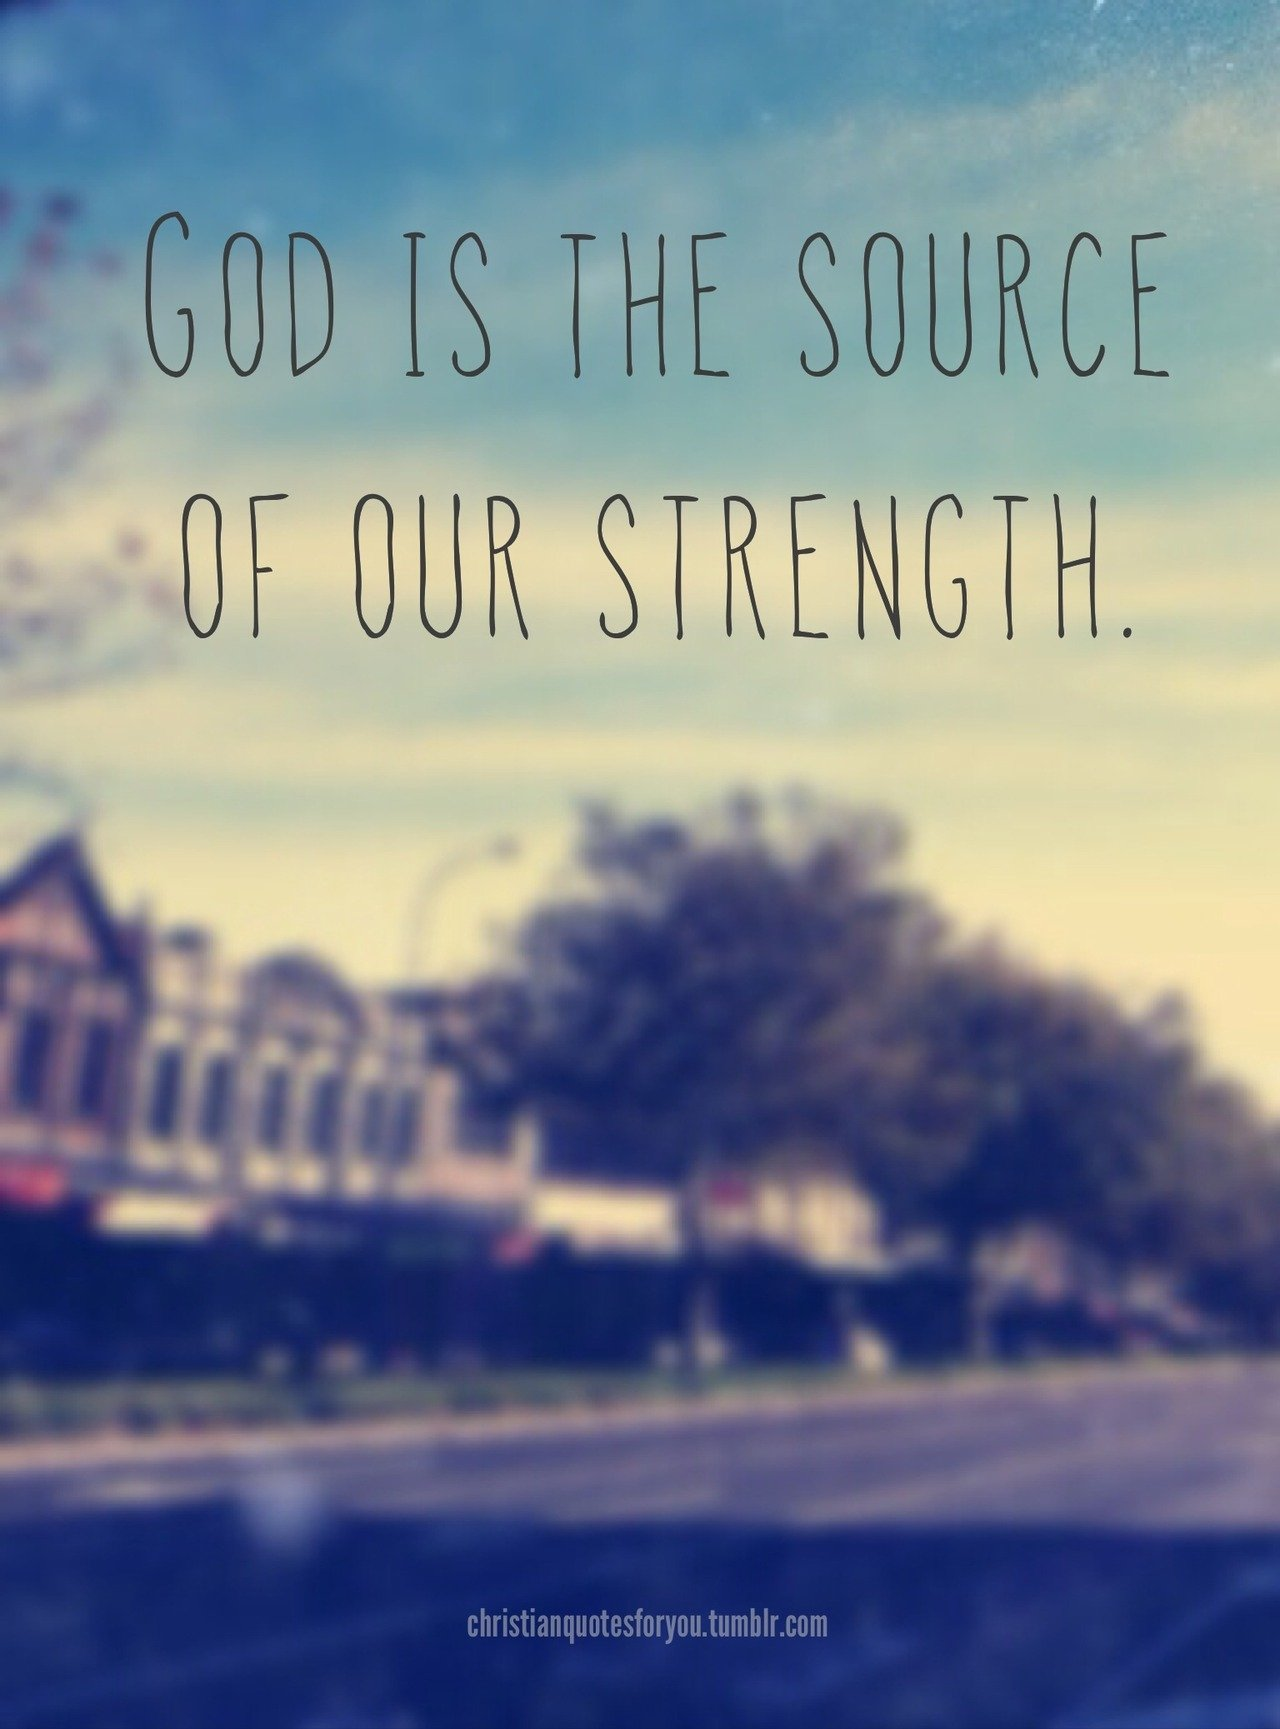 Christian inspirational quotes for strength quotesgram for Short inspirational quotes about strength